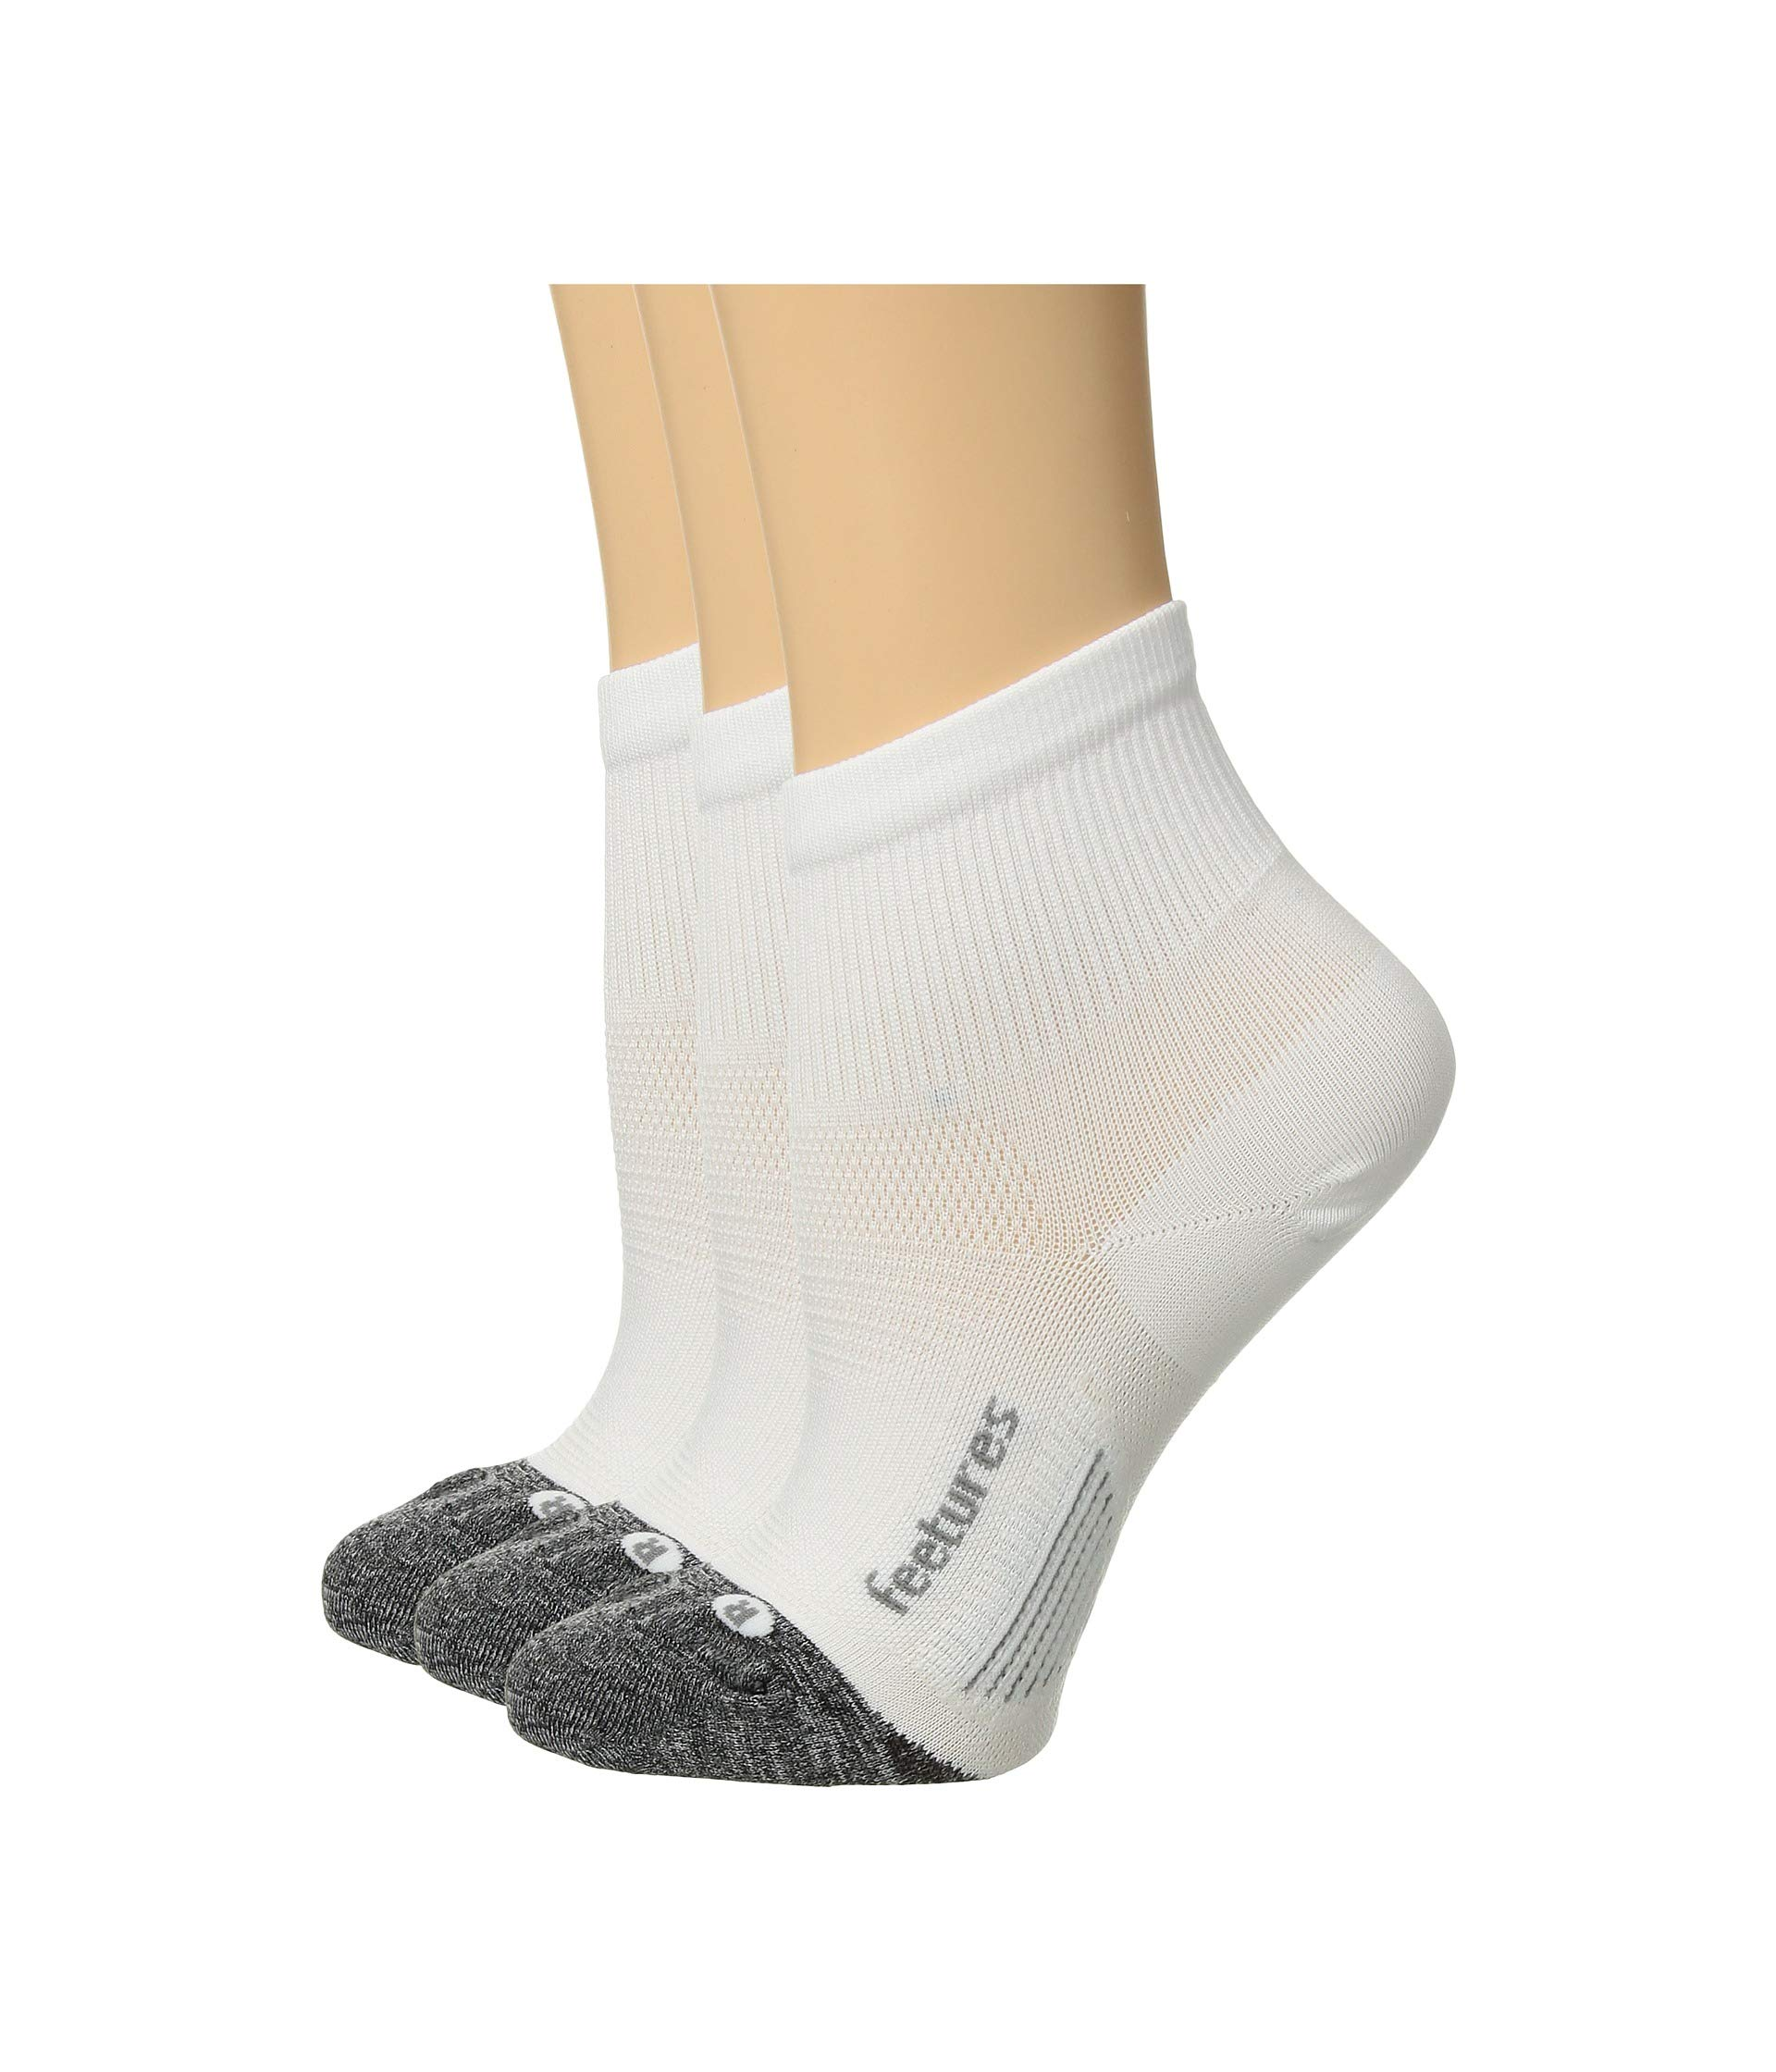 Elite Quarter Ultra Light White Feetures Pack pair 3 dCqOwMxSt